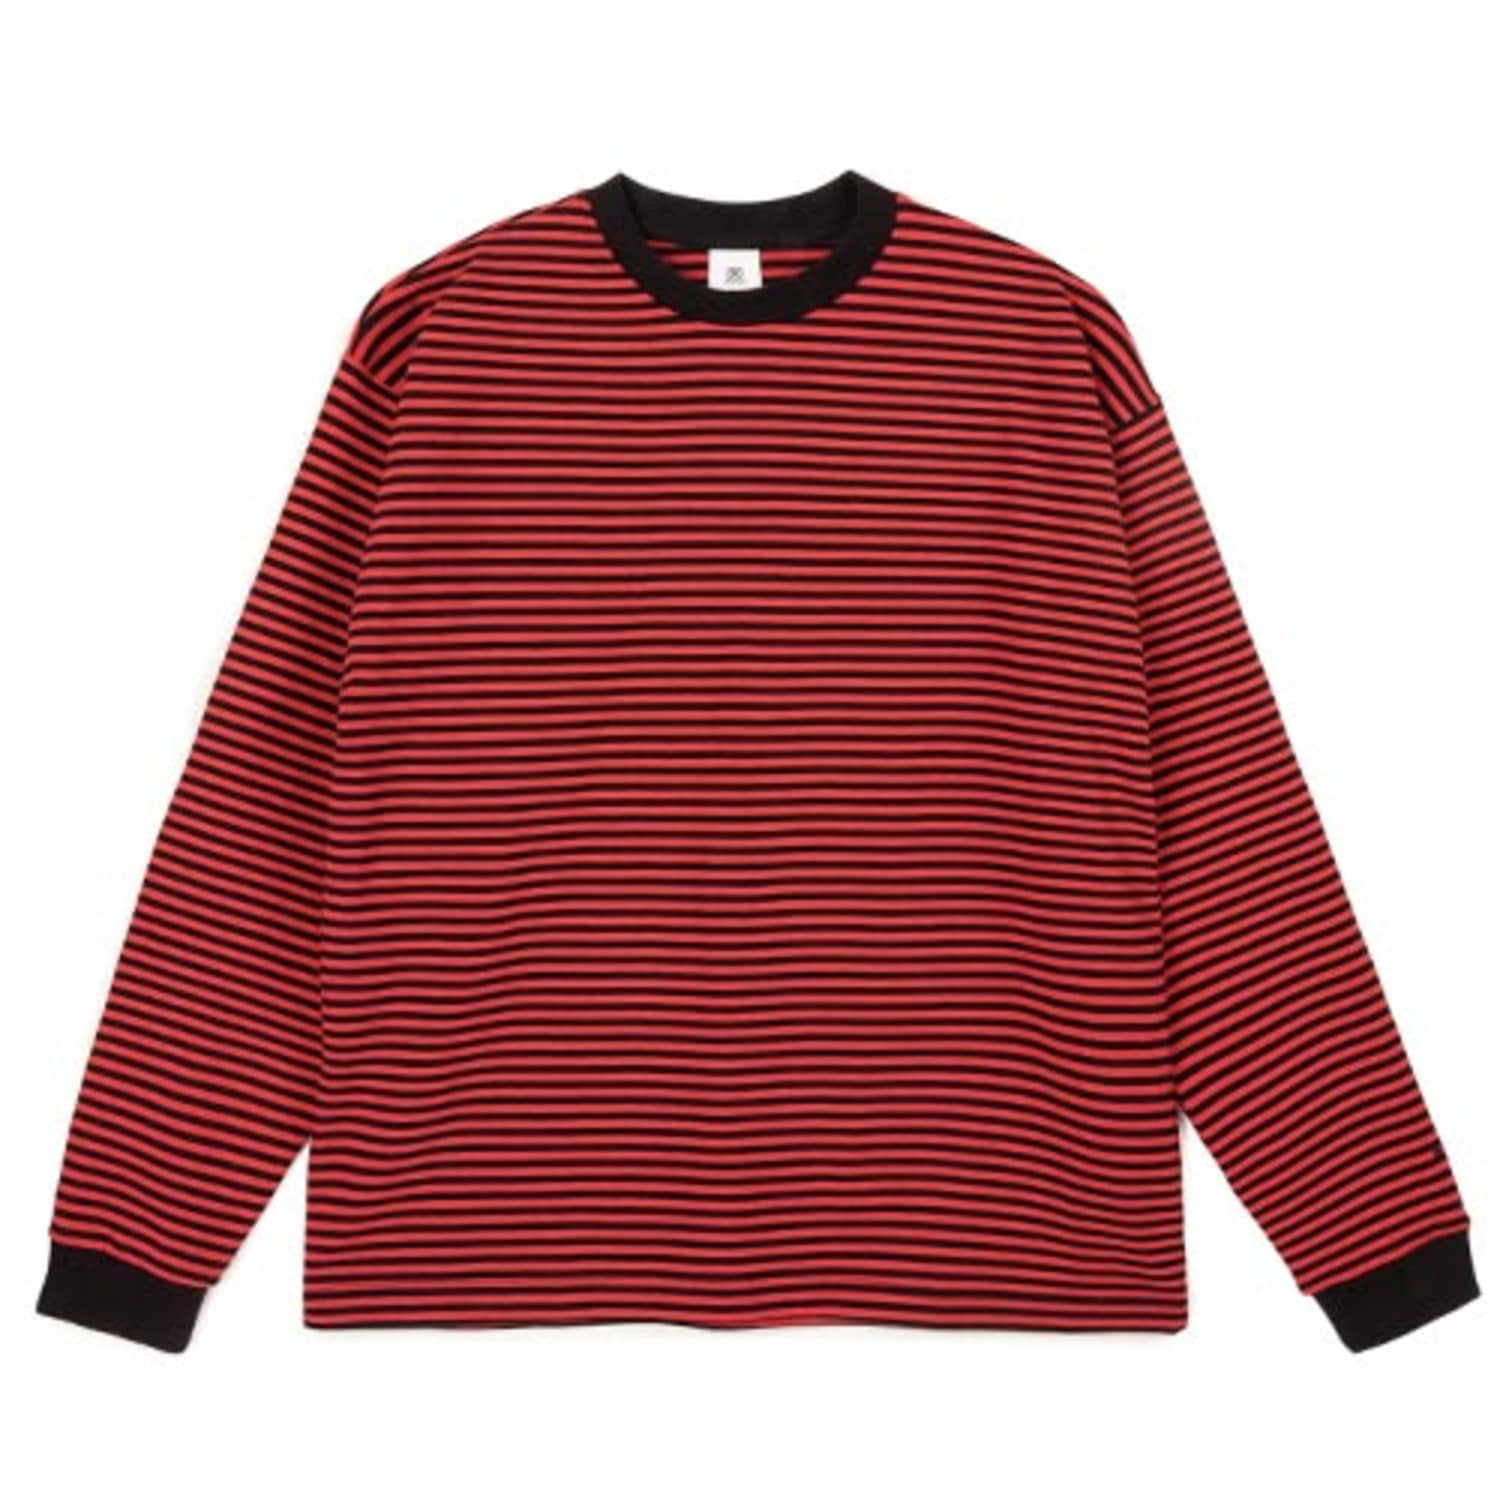 2809 Stripe t-shirt(Red)(40%SALE)